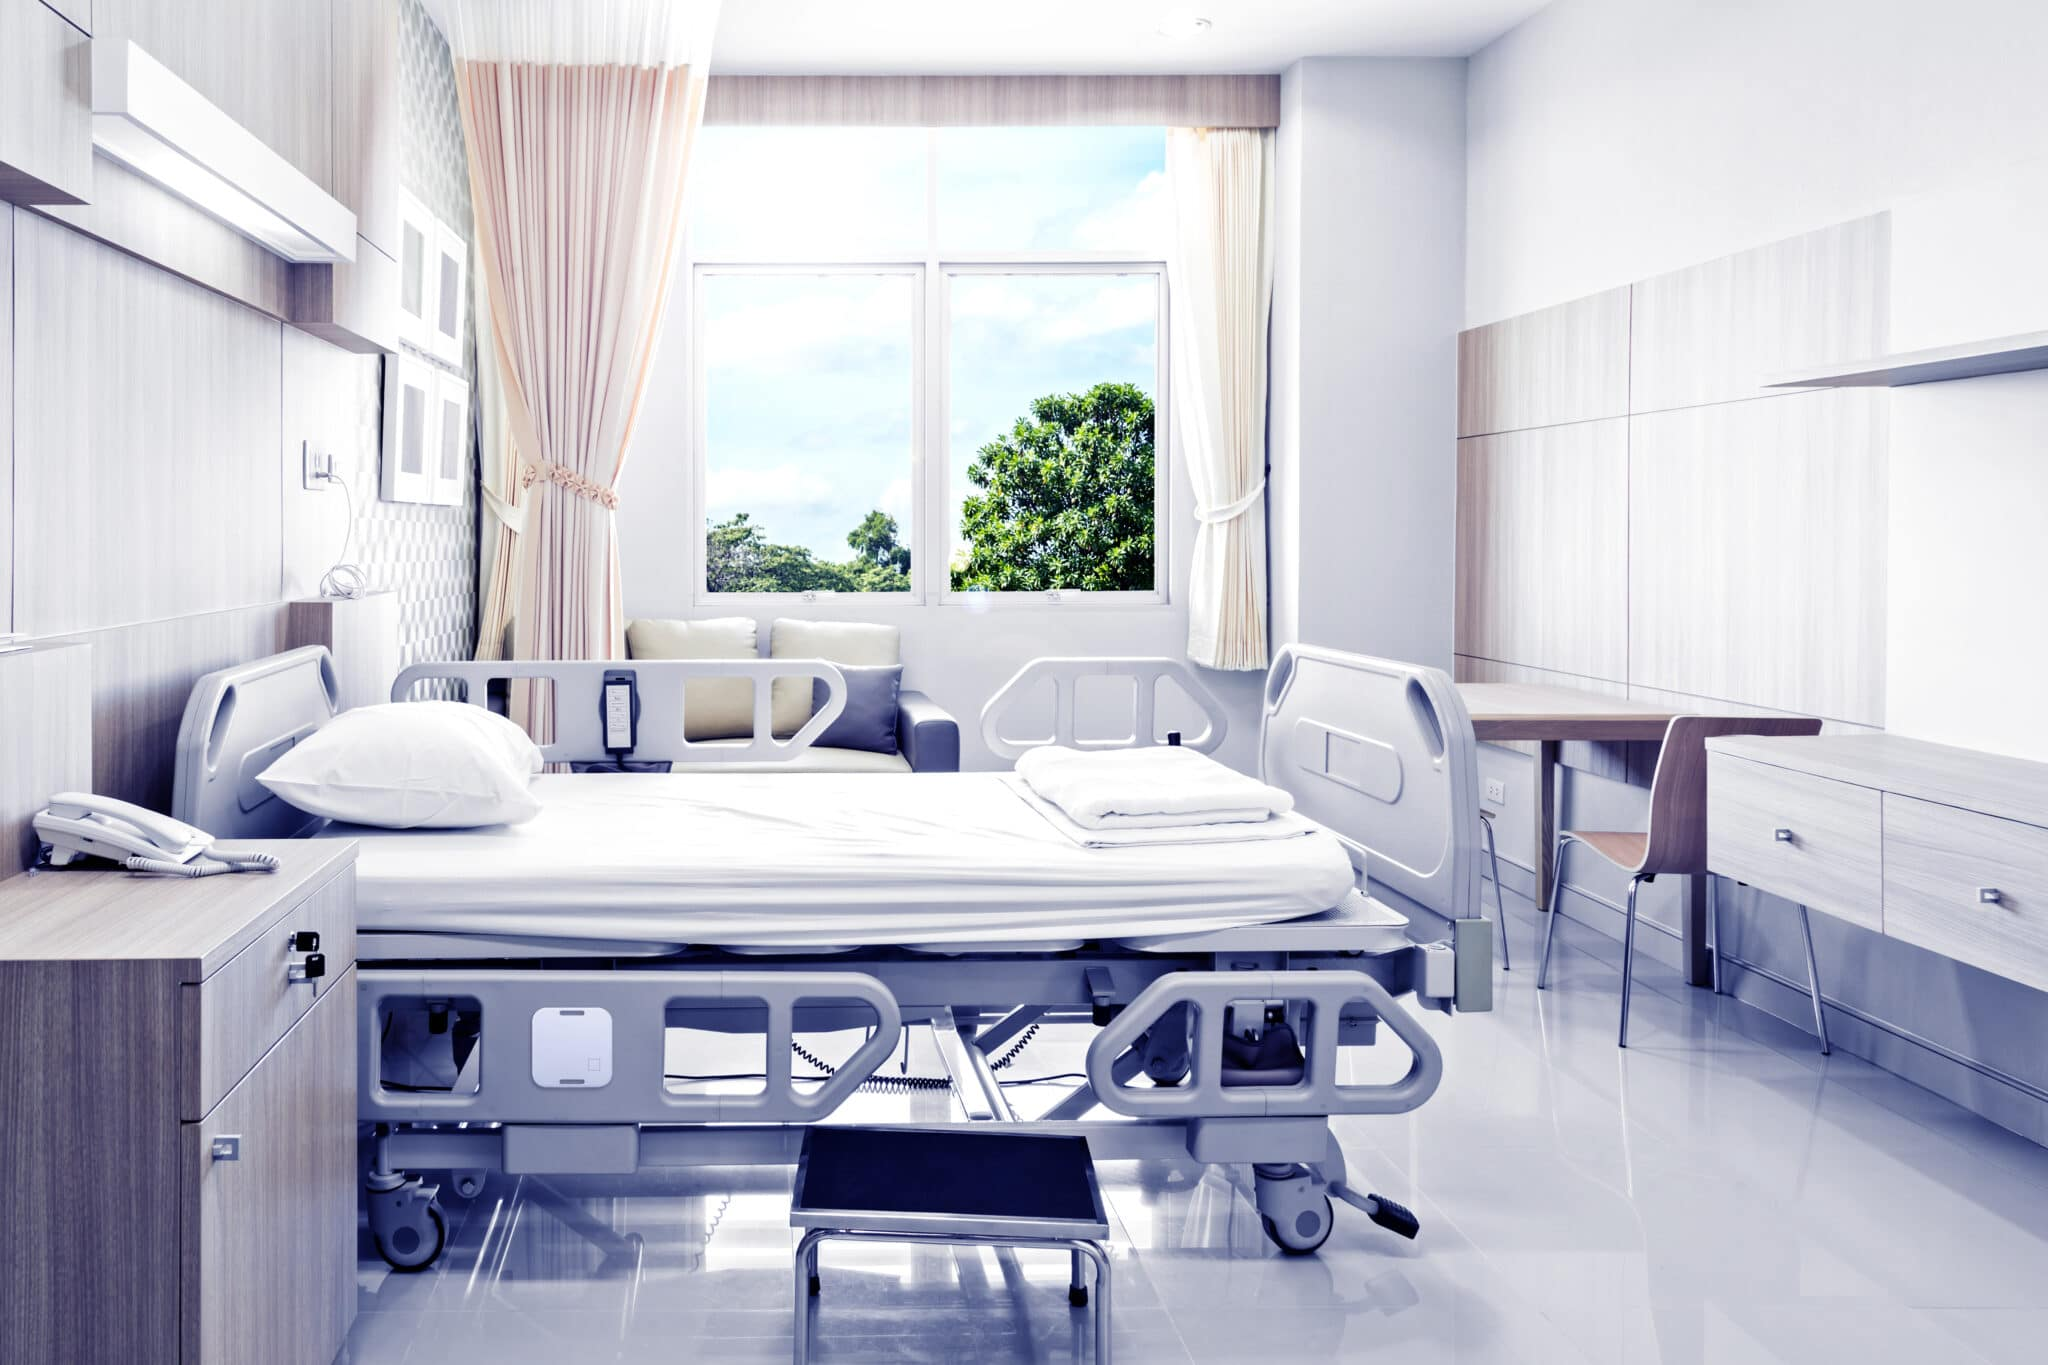 RTLS Use Cases in Healthcare